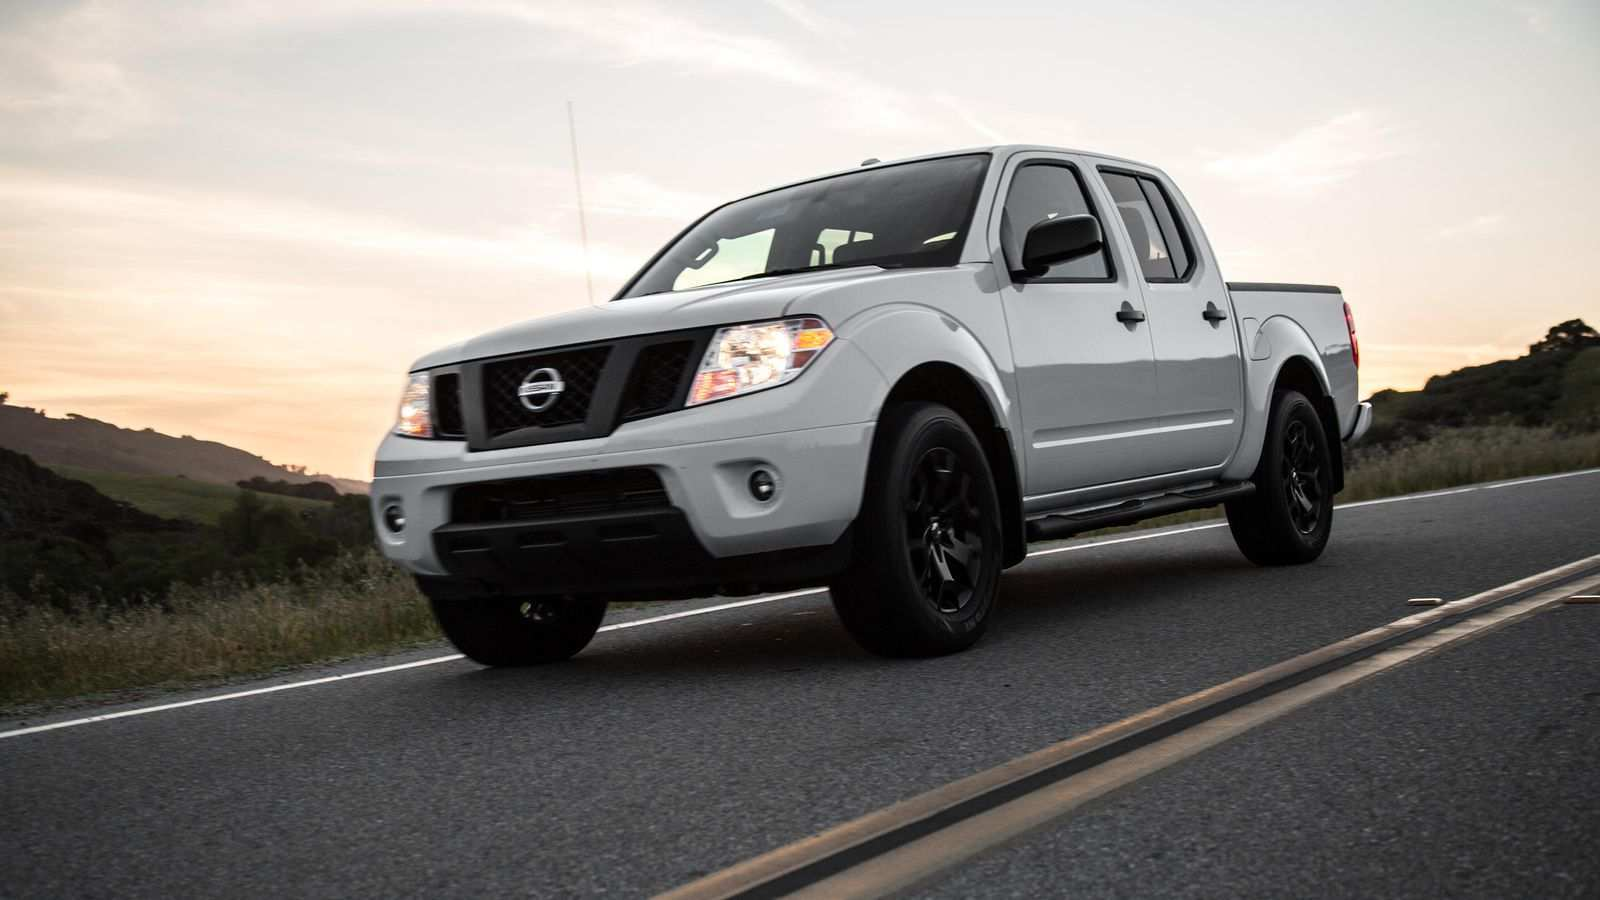 32 Great Nissan Frontier 2020 Concept with Nissan Frontier 2020